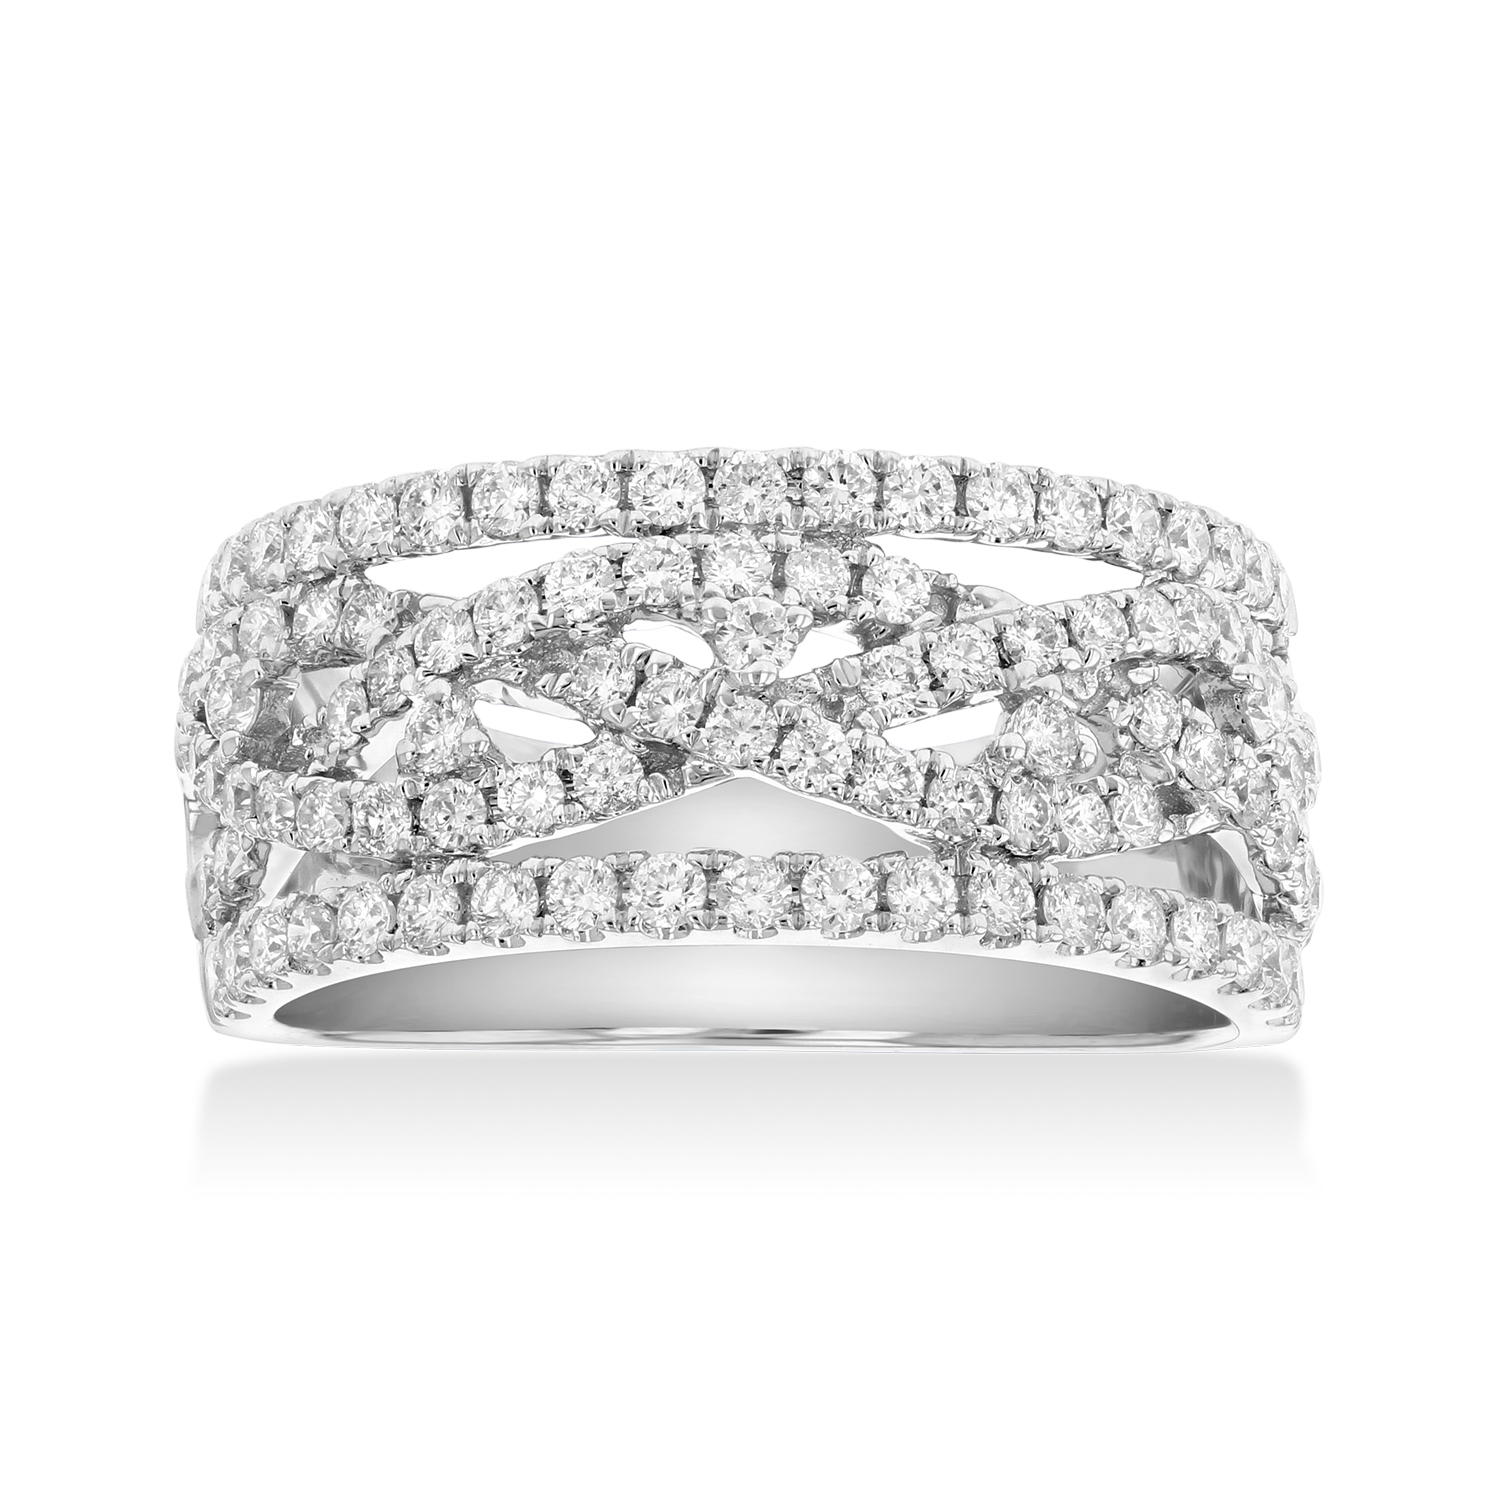 View 0.93ctw Diamond Fashion Band in 18k WG